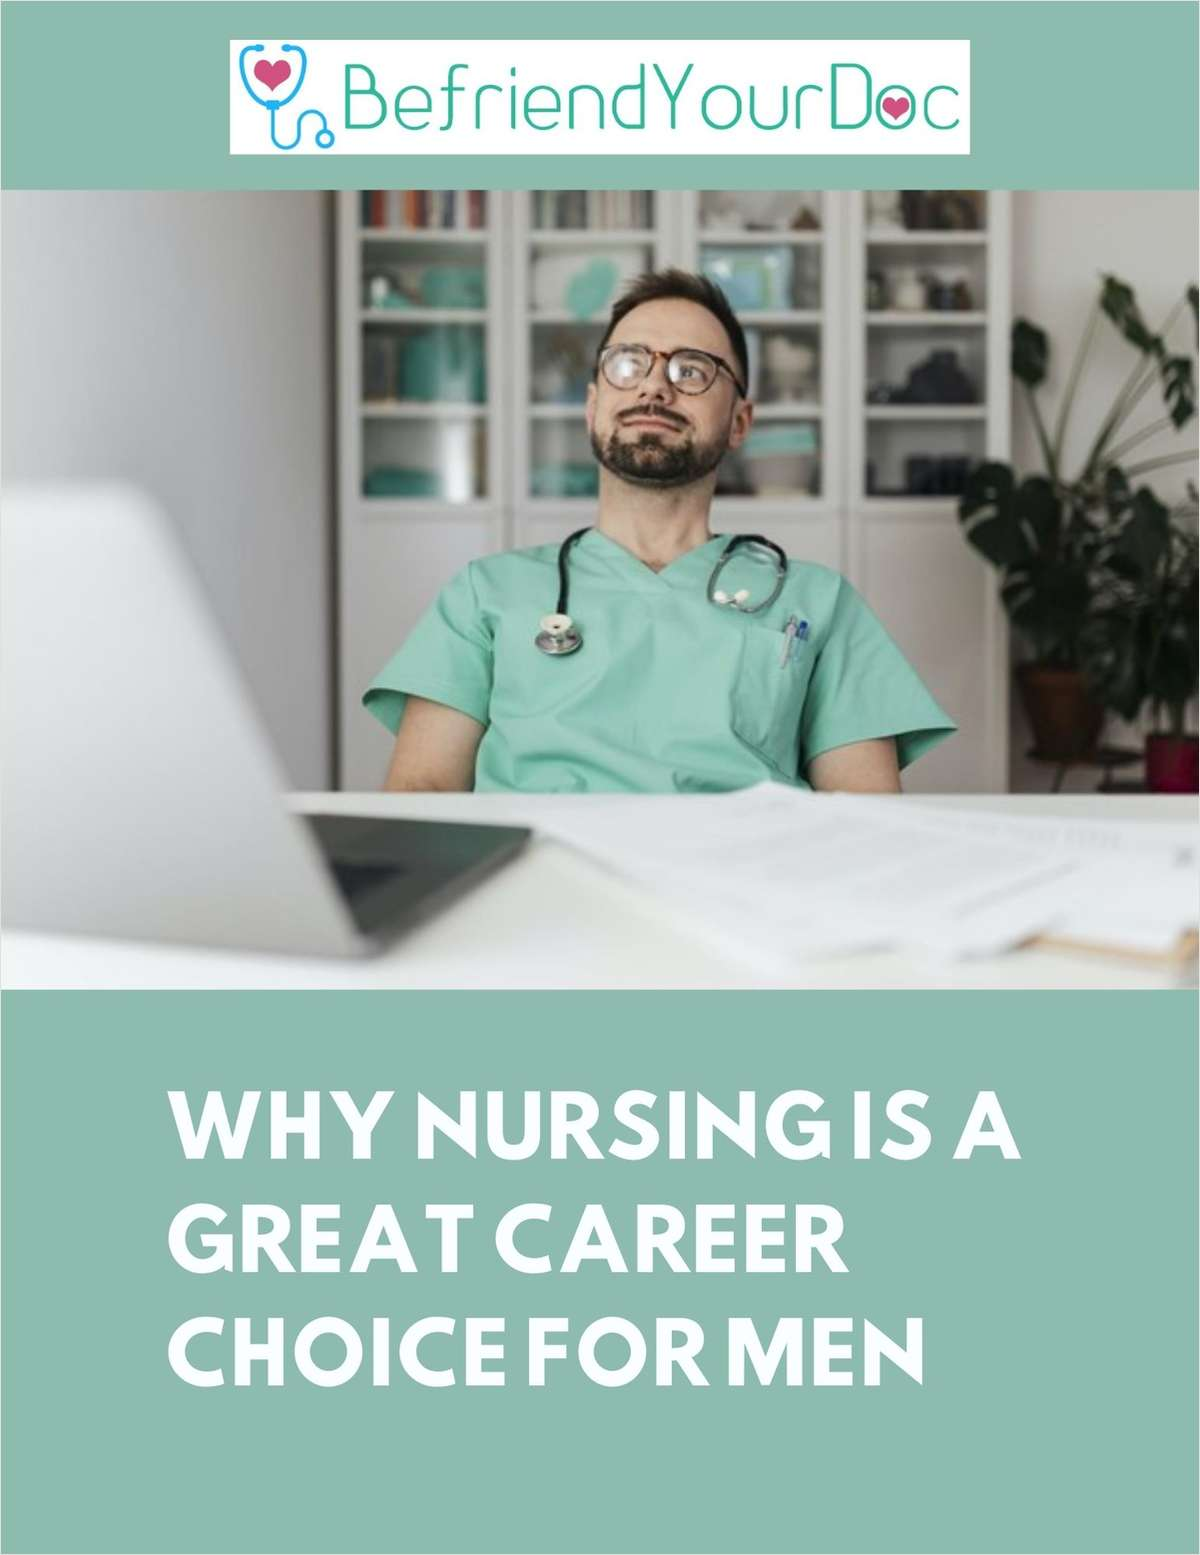 Why Nursing is a Great Career Choice for Men